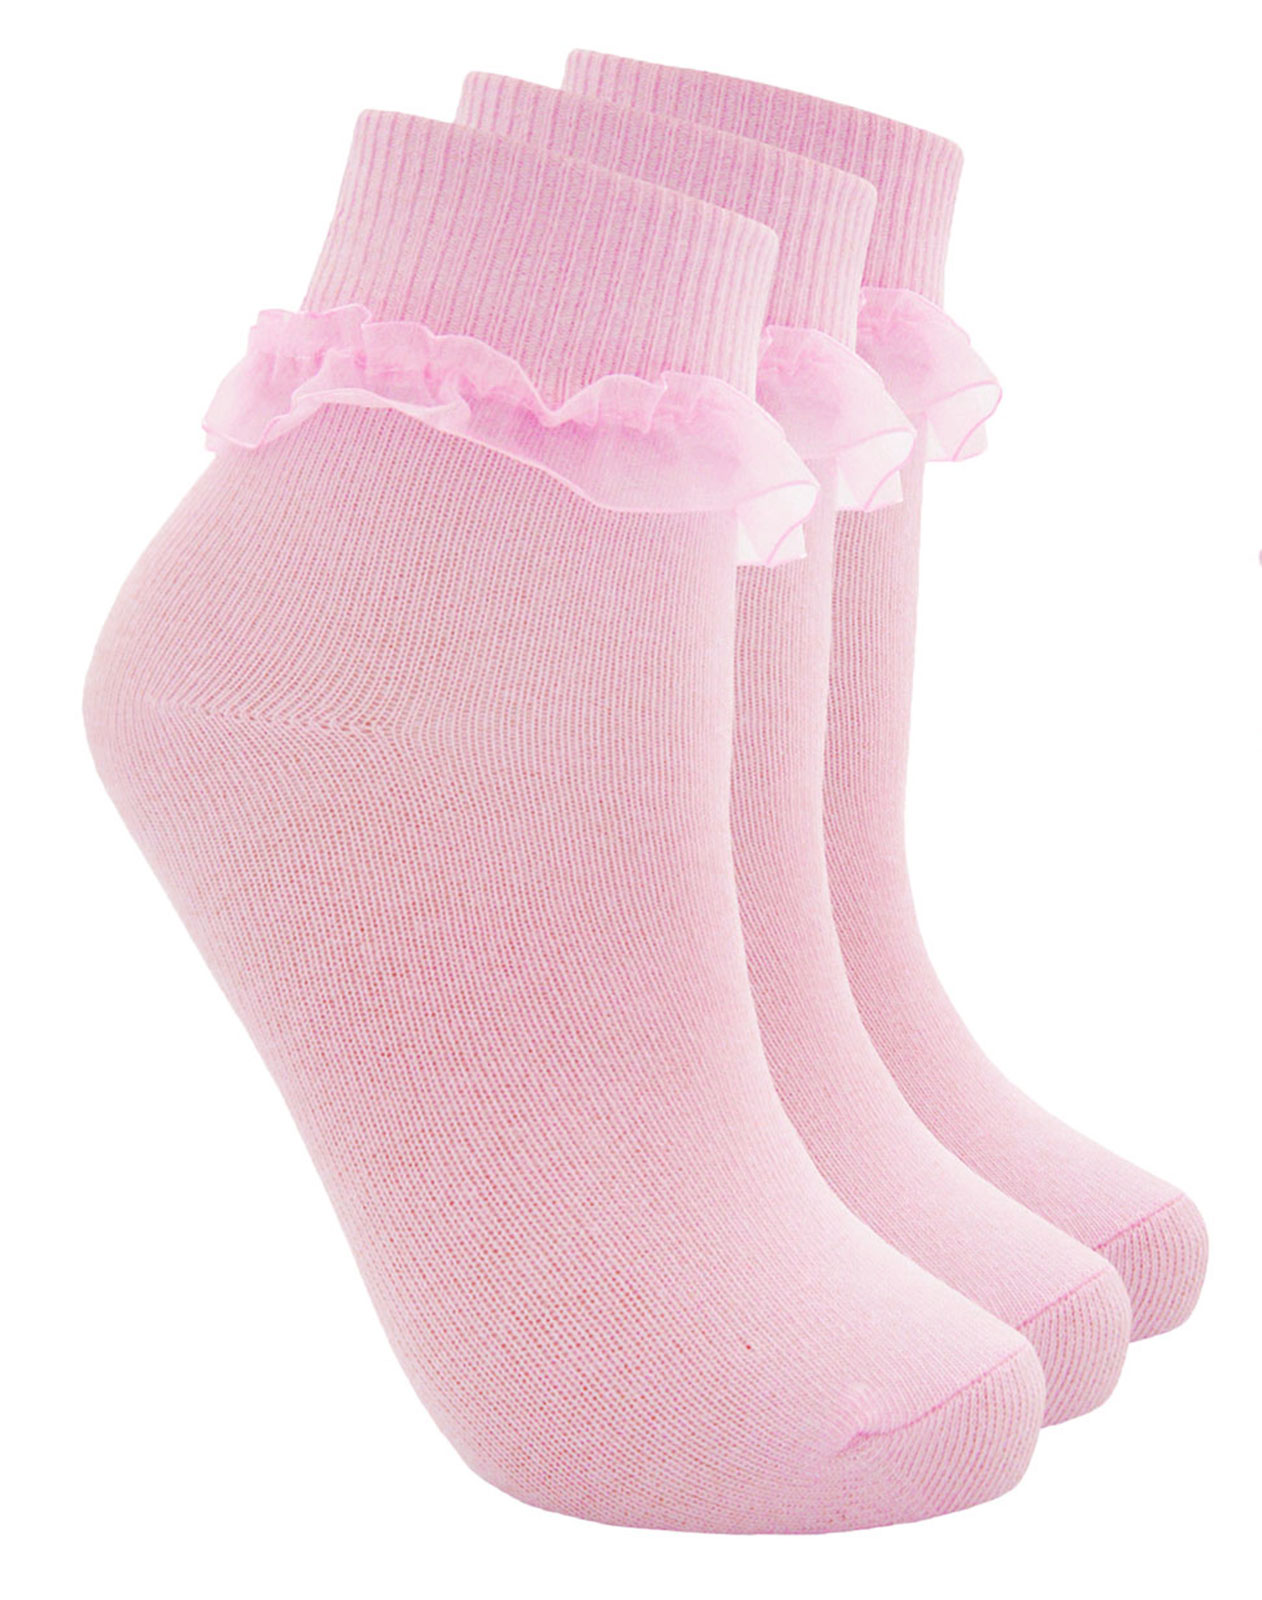 12 Pairs Girls Frilly Socks Kids School White Lace Ankle Summer Cotton Pack 6